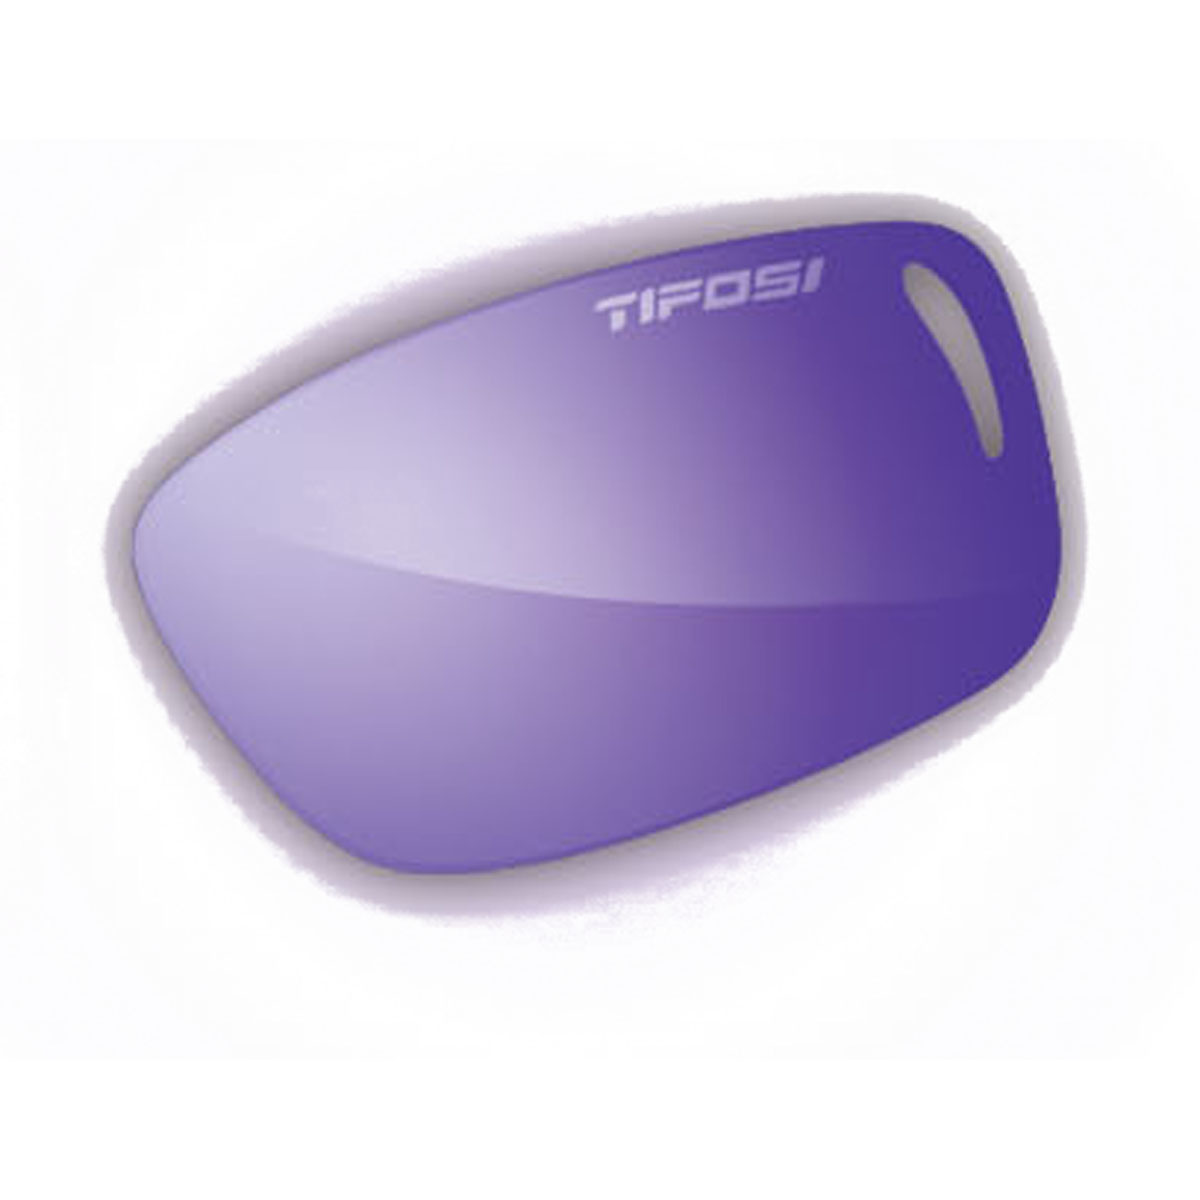 a4623c358d Tifosi Optics Podium XC Sunglasses Replacement Lenses - Clarion 1075299985  Clarion Purple. About this product. Picture 1 of 2  Picture 2 of 2